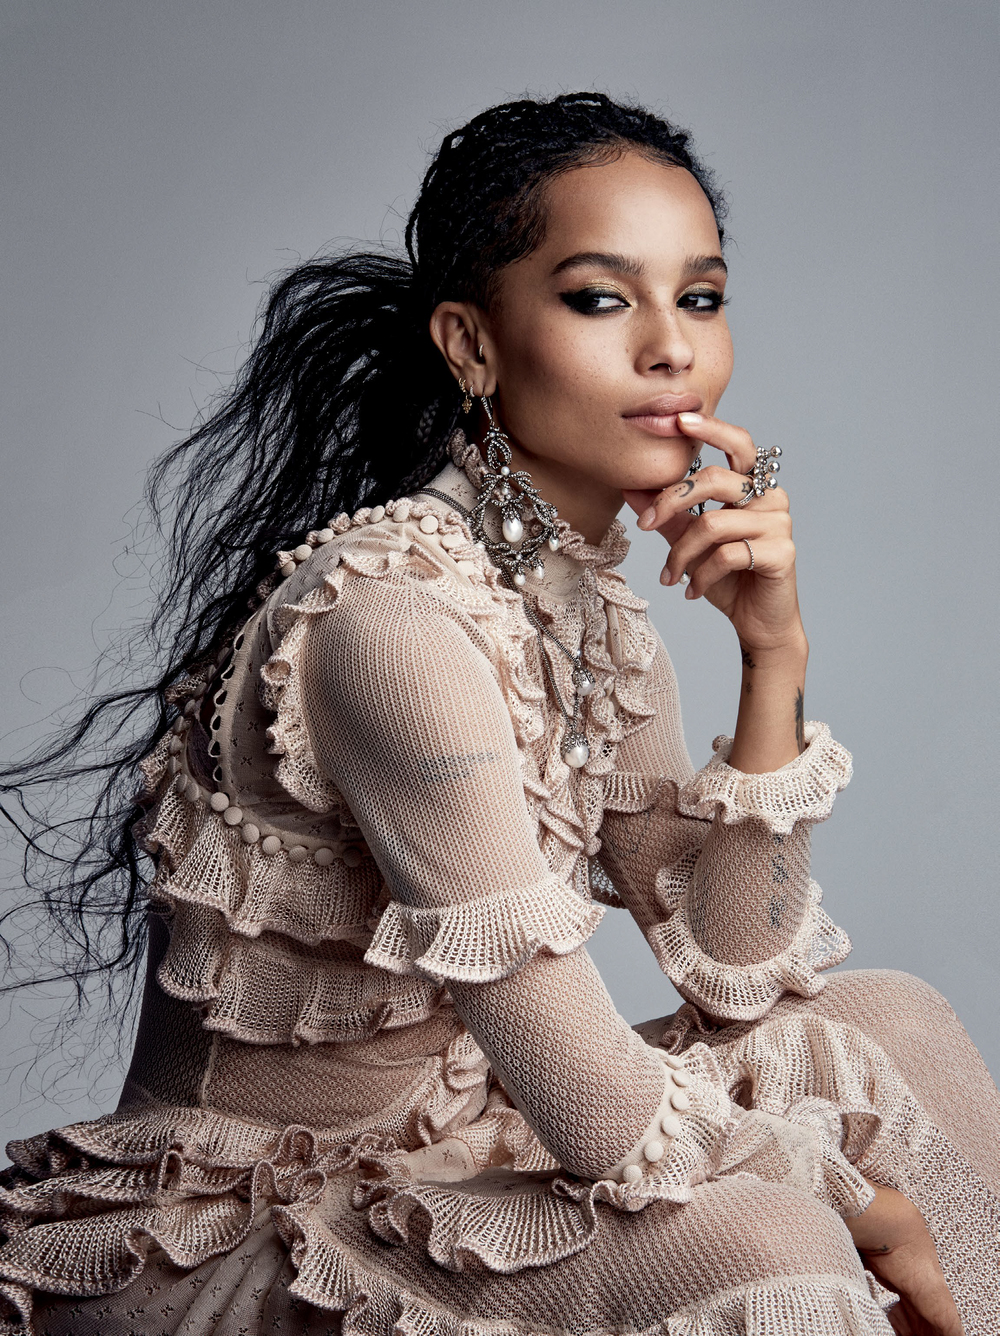 Vogue_US-May_2016-02-Zoe_Kravitz-by-Patrick_Demarchelier.jpg